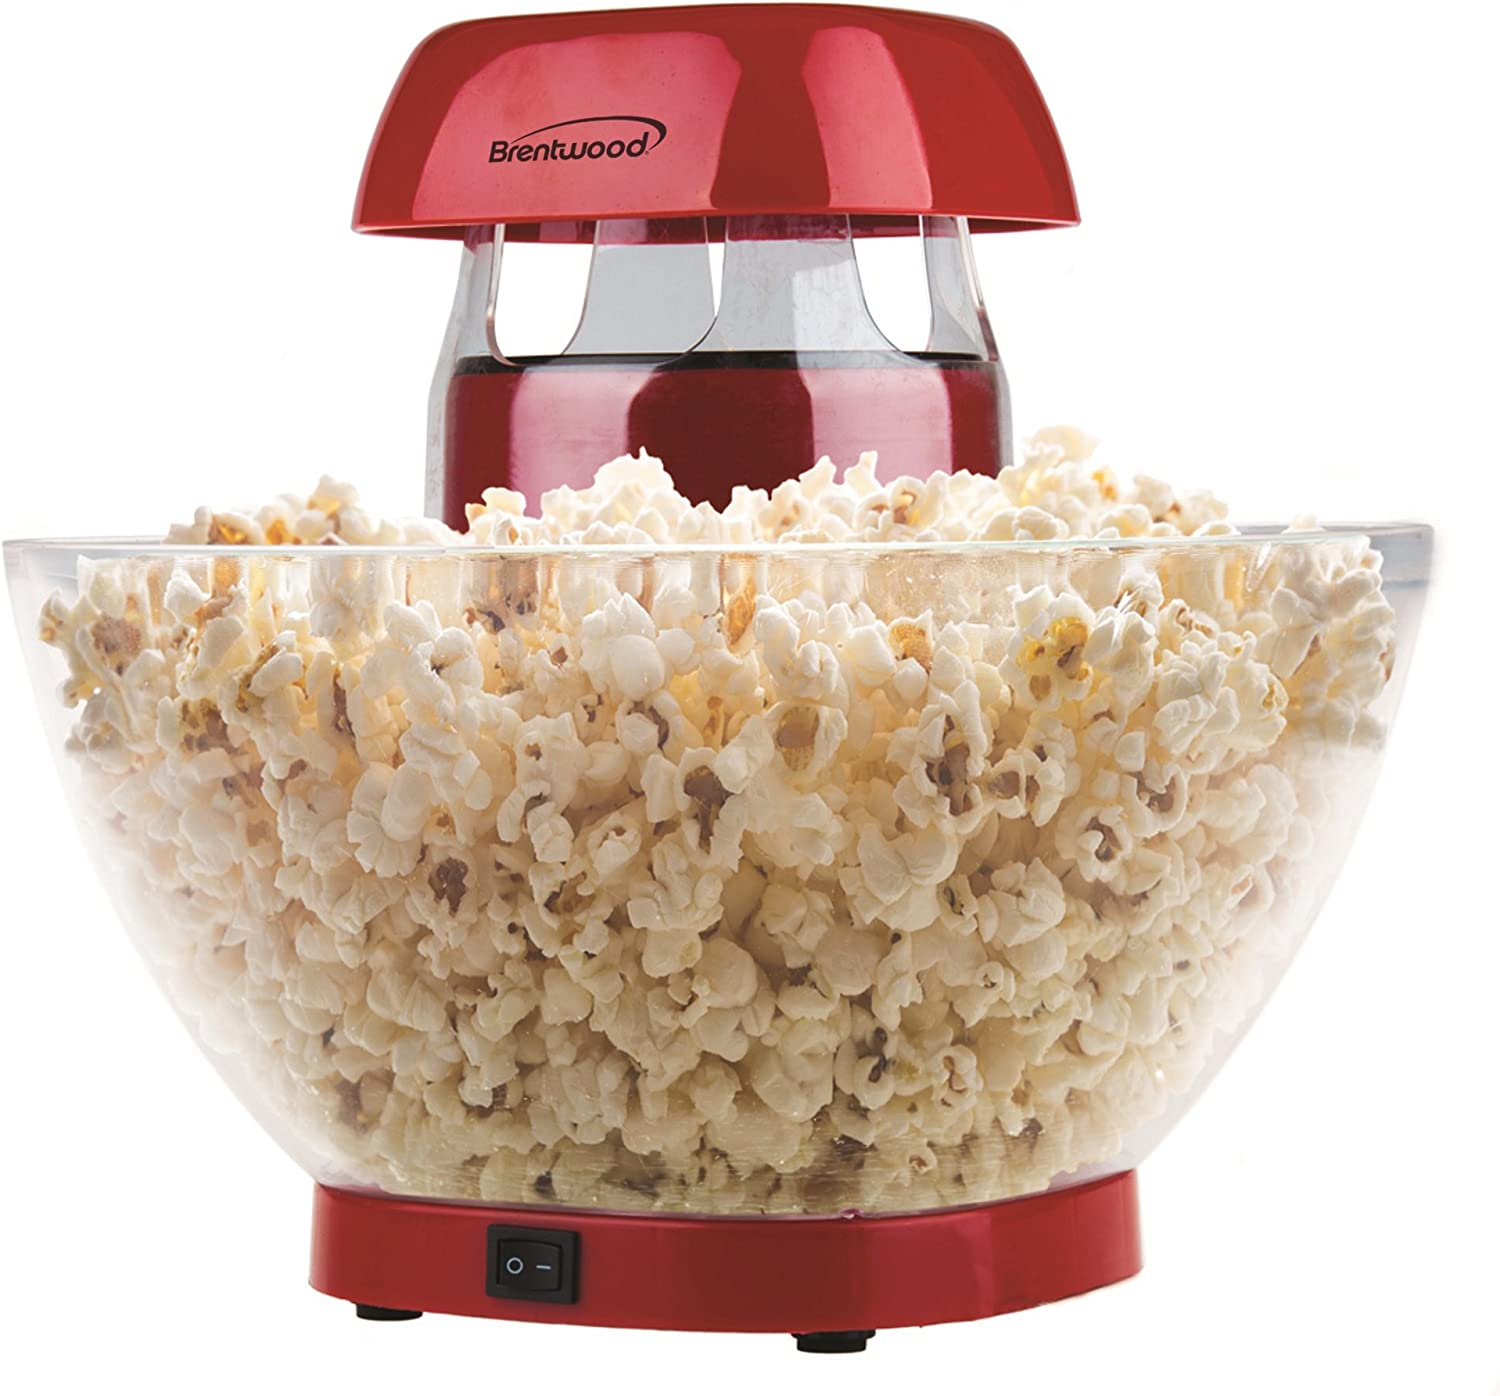 Brentwood PC-490R Jumbo Hot Air Popcorn Maker, 24-Cup, Red